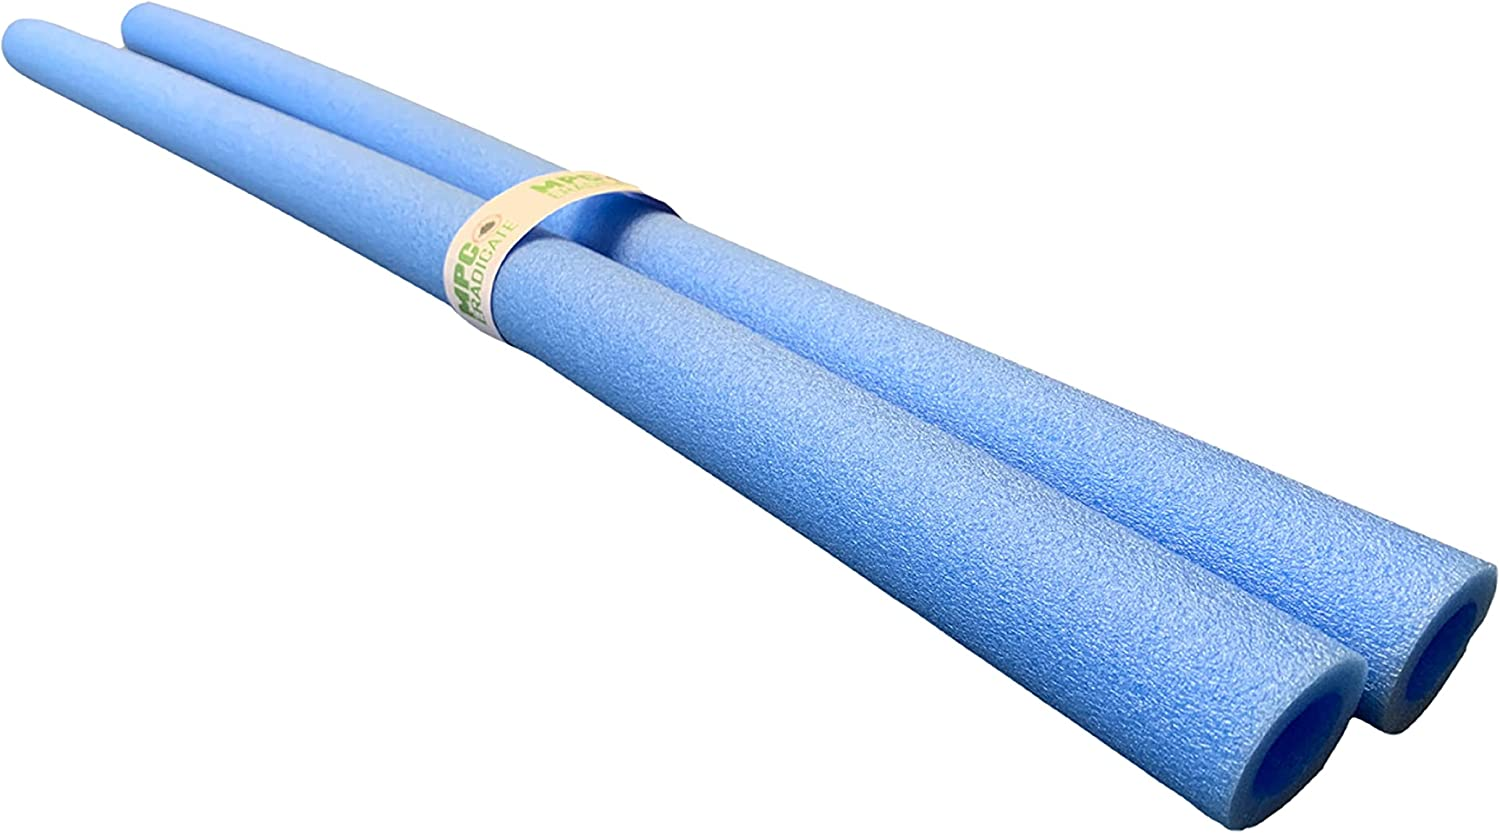 Trampoline Pole End Cap and upholstery//Foam Sleeve 6 he Set Accessories